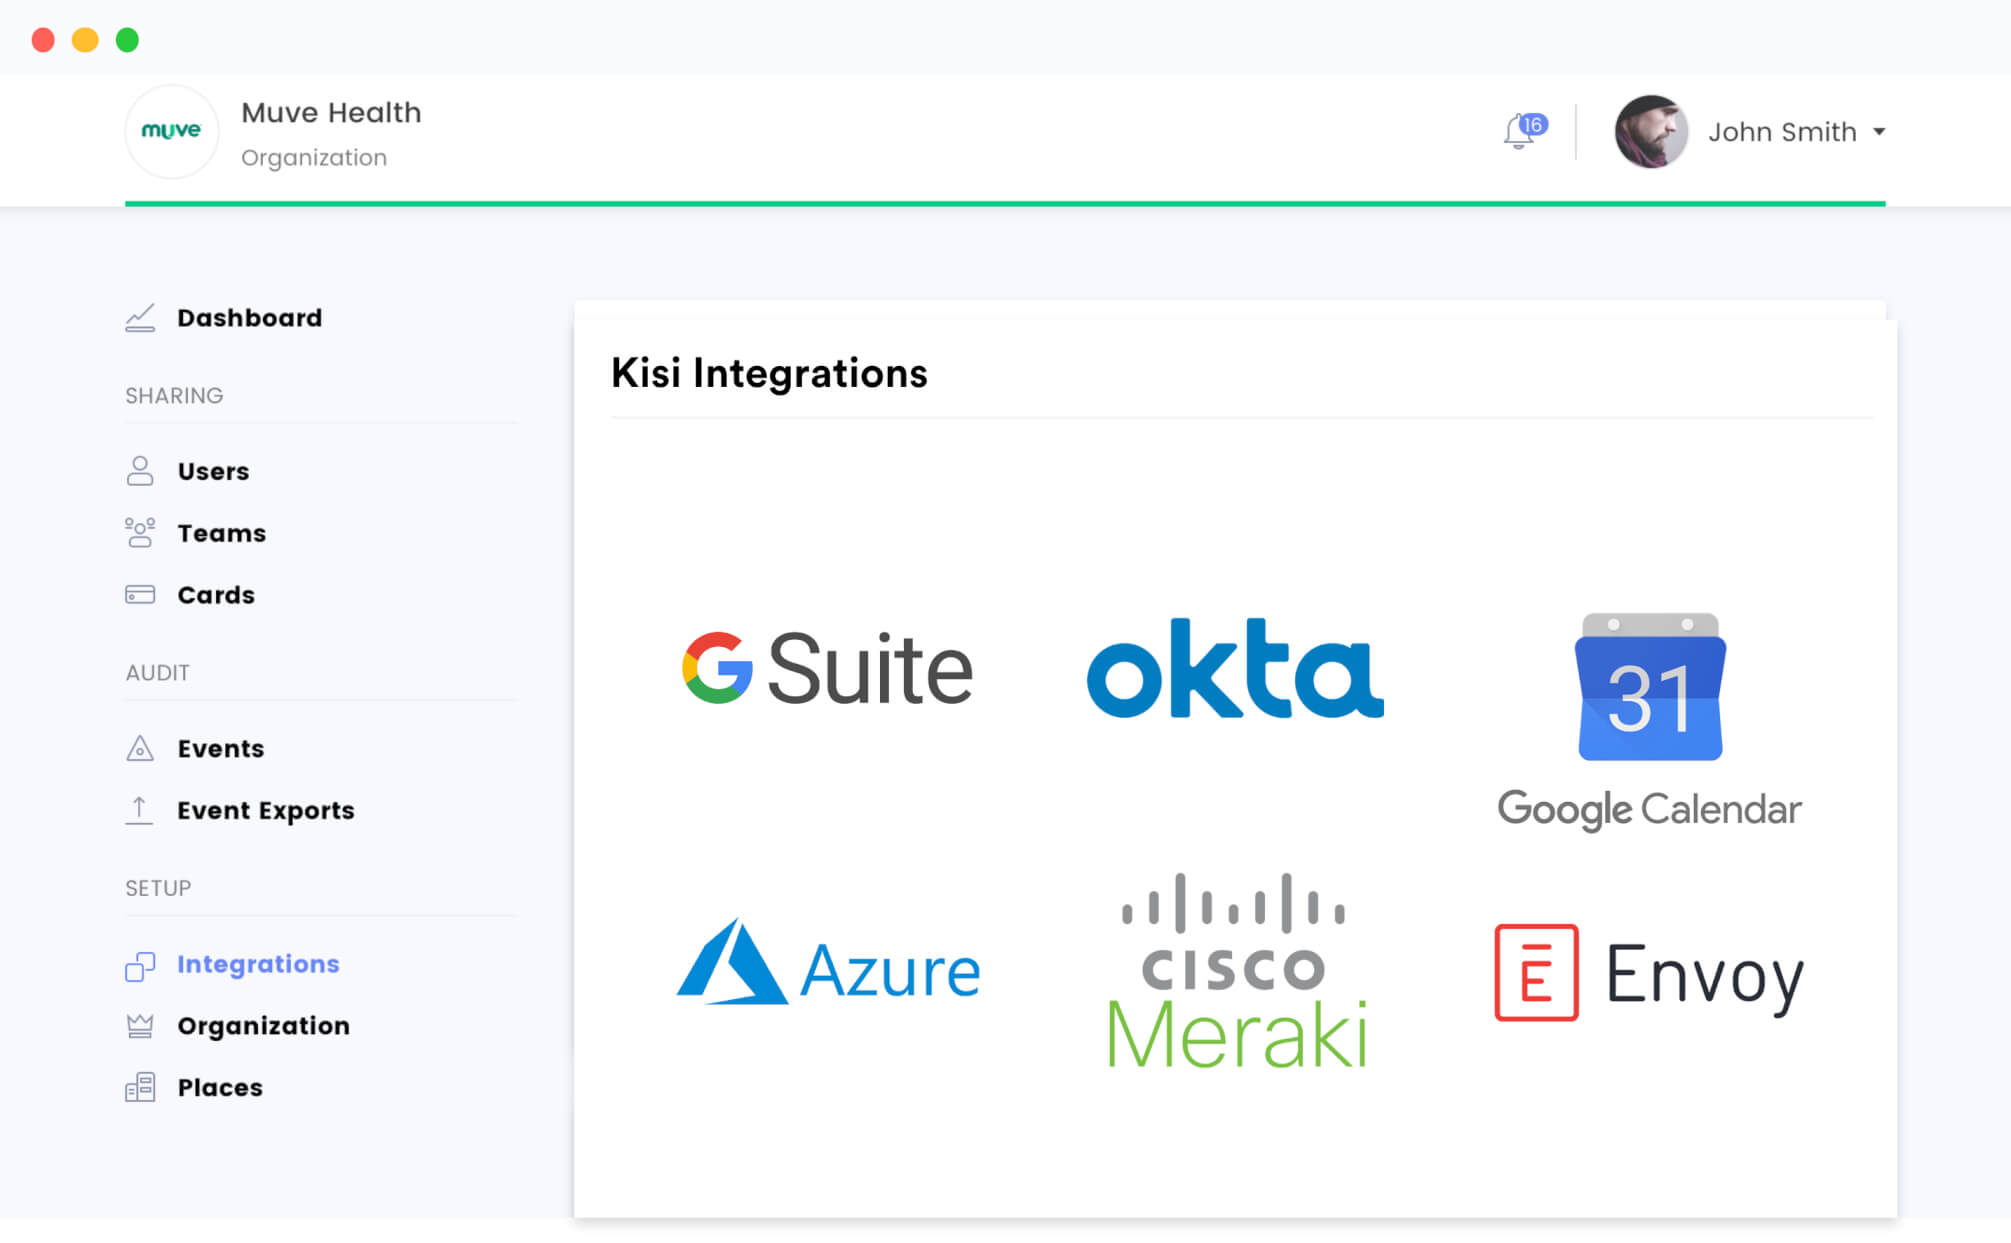 kisi integrations dashboard